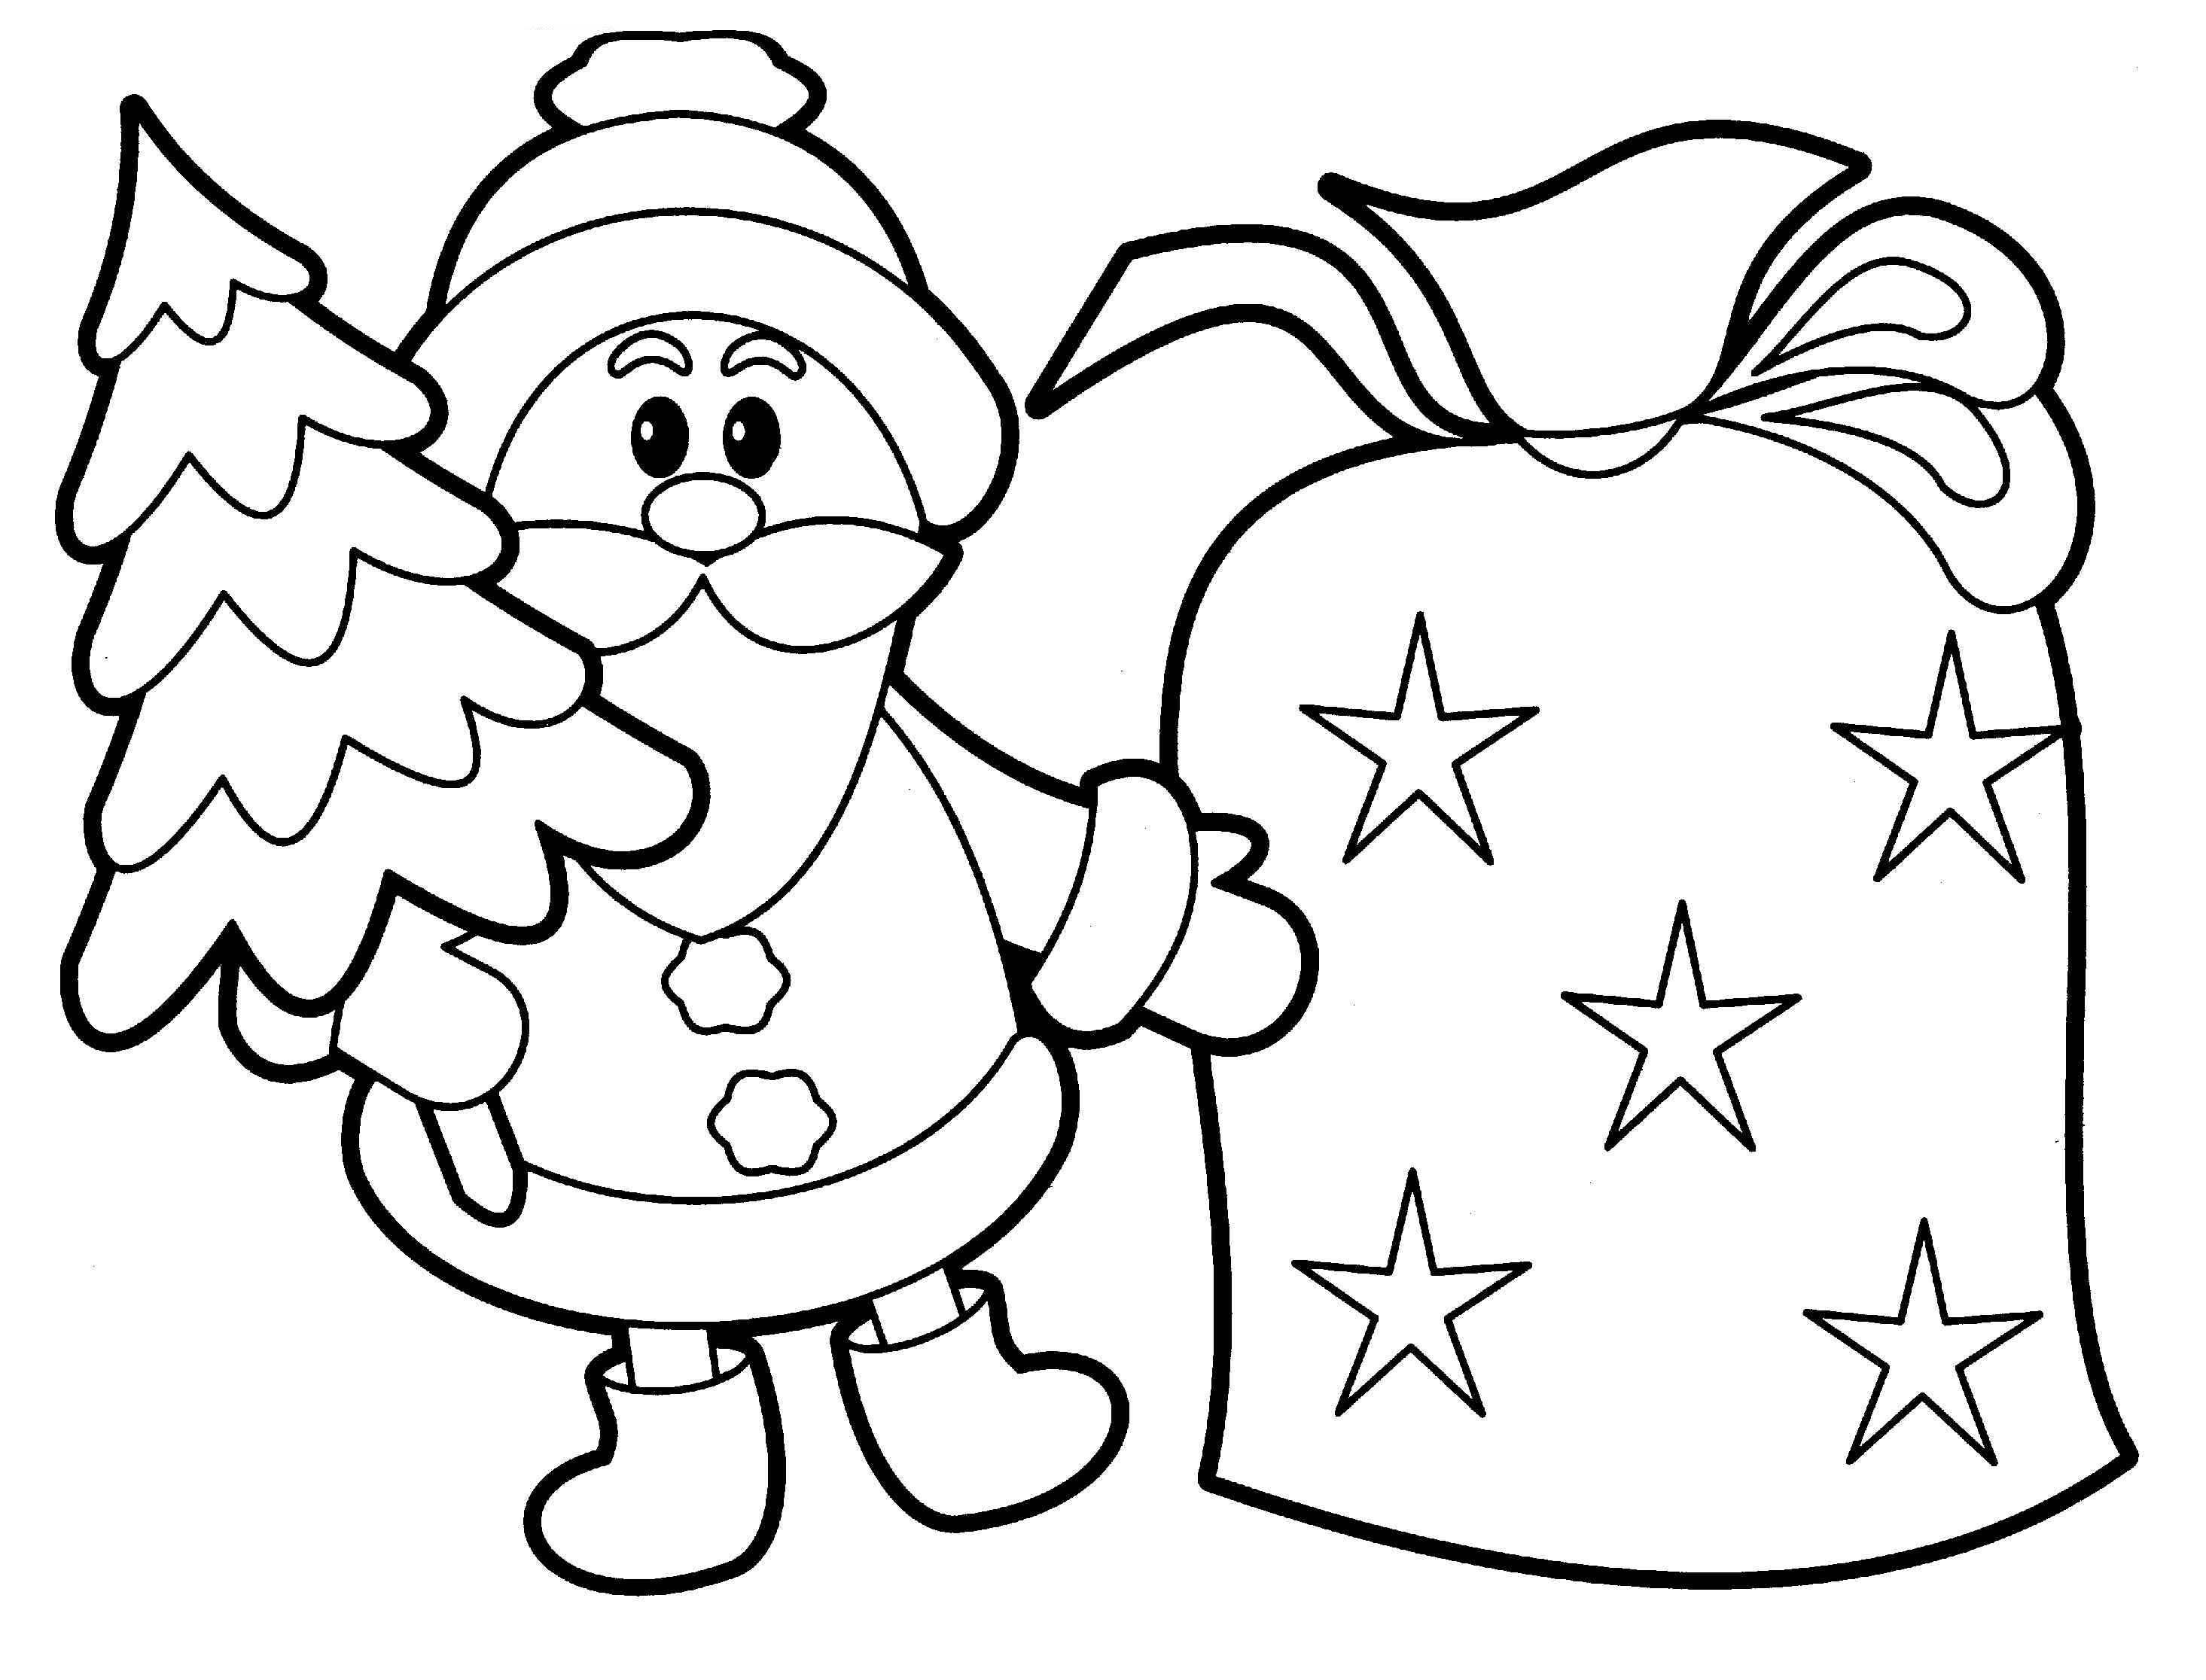 Keroppi Coloring Pages Free to Print Copy Awesome Cute Coloring Download Of Cute Coloring Pages for Girls Printable Kids Colouring Pages Kids Gallery